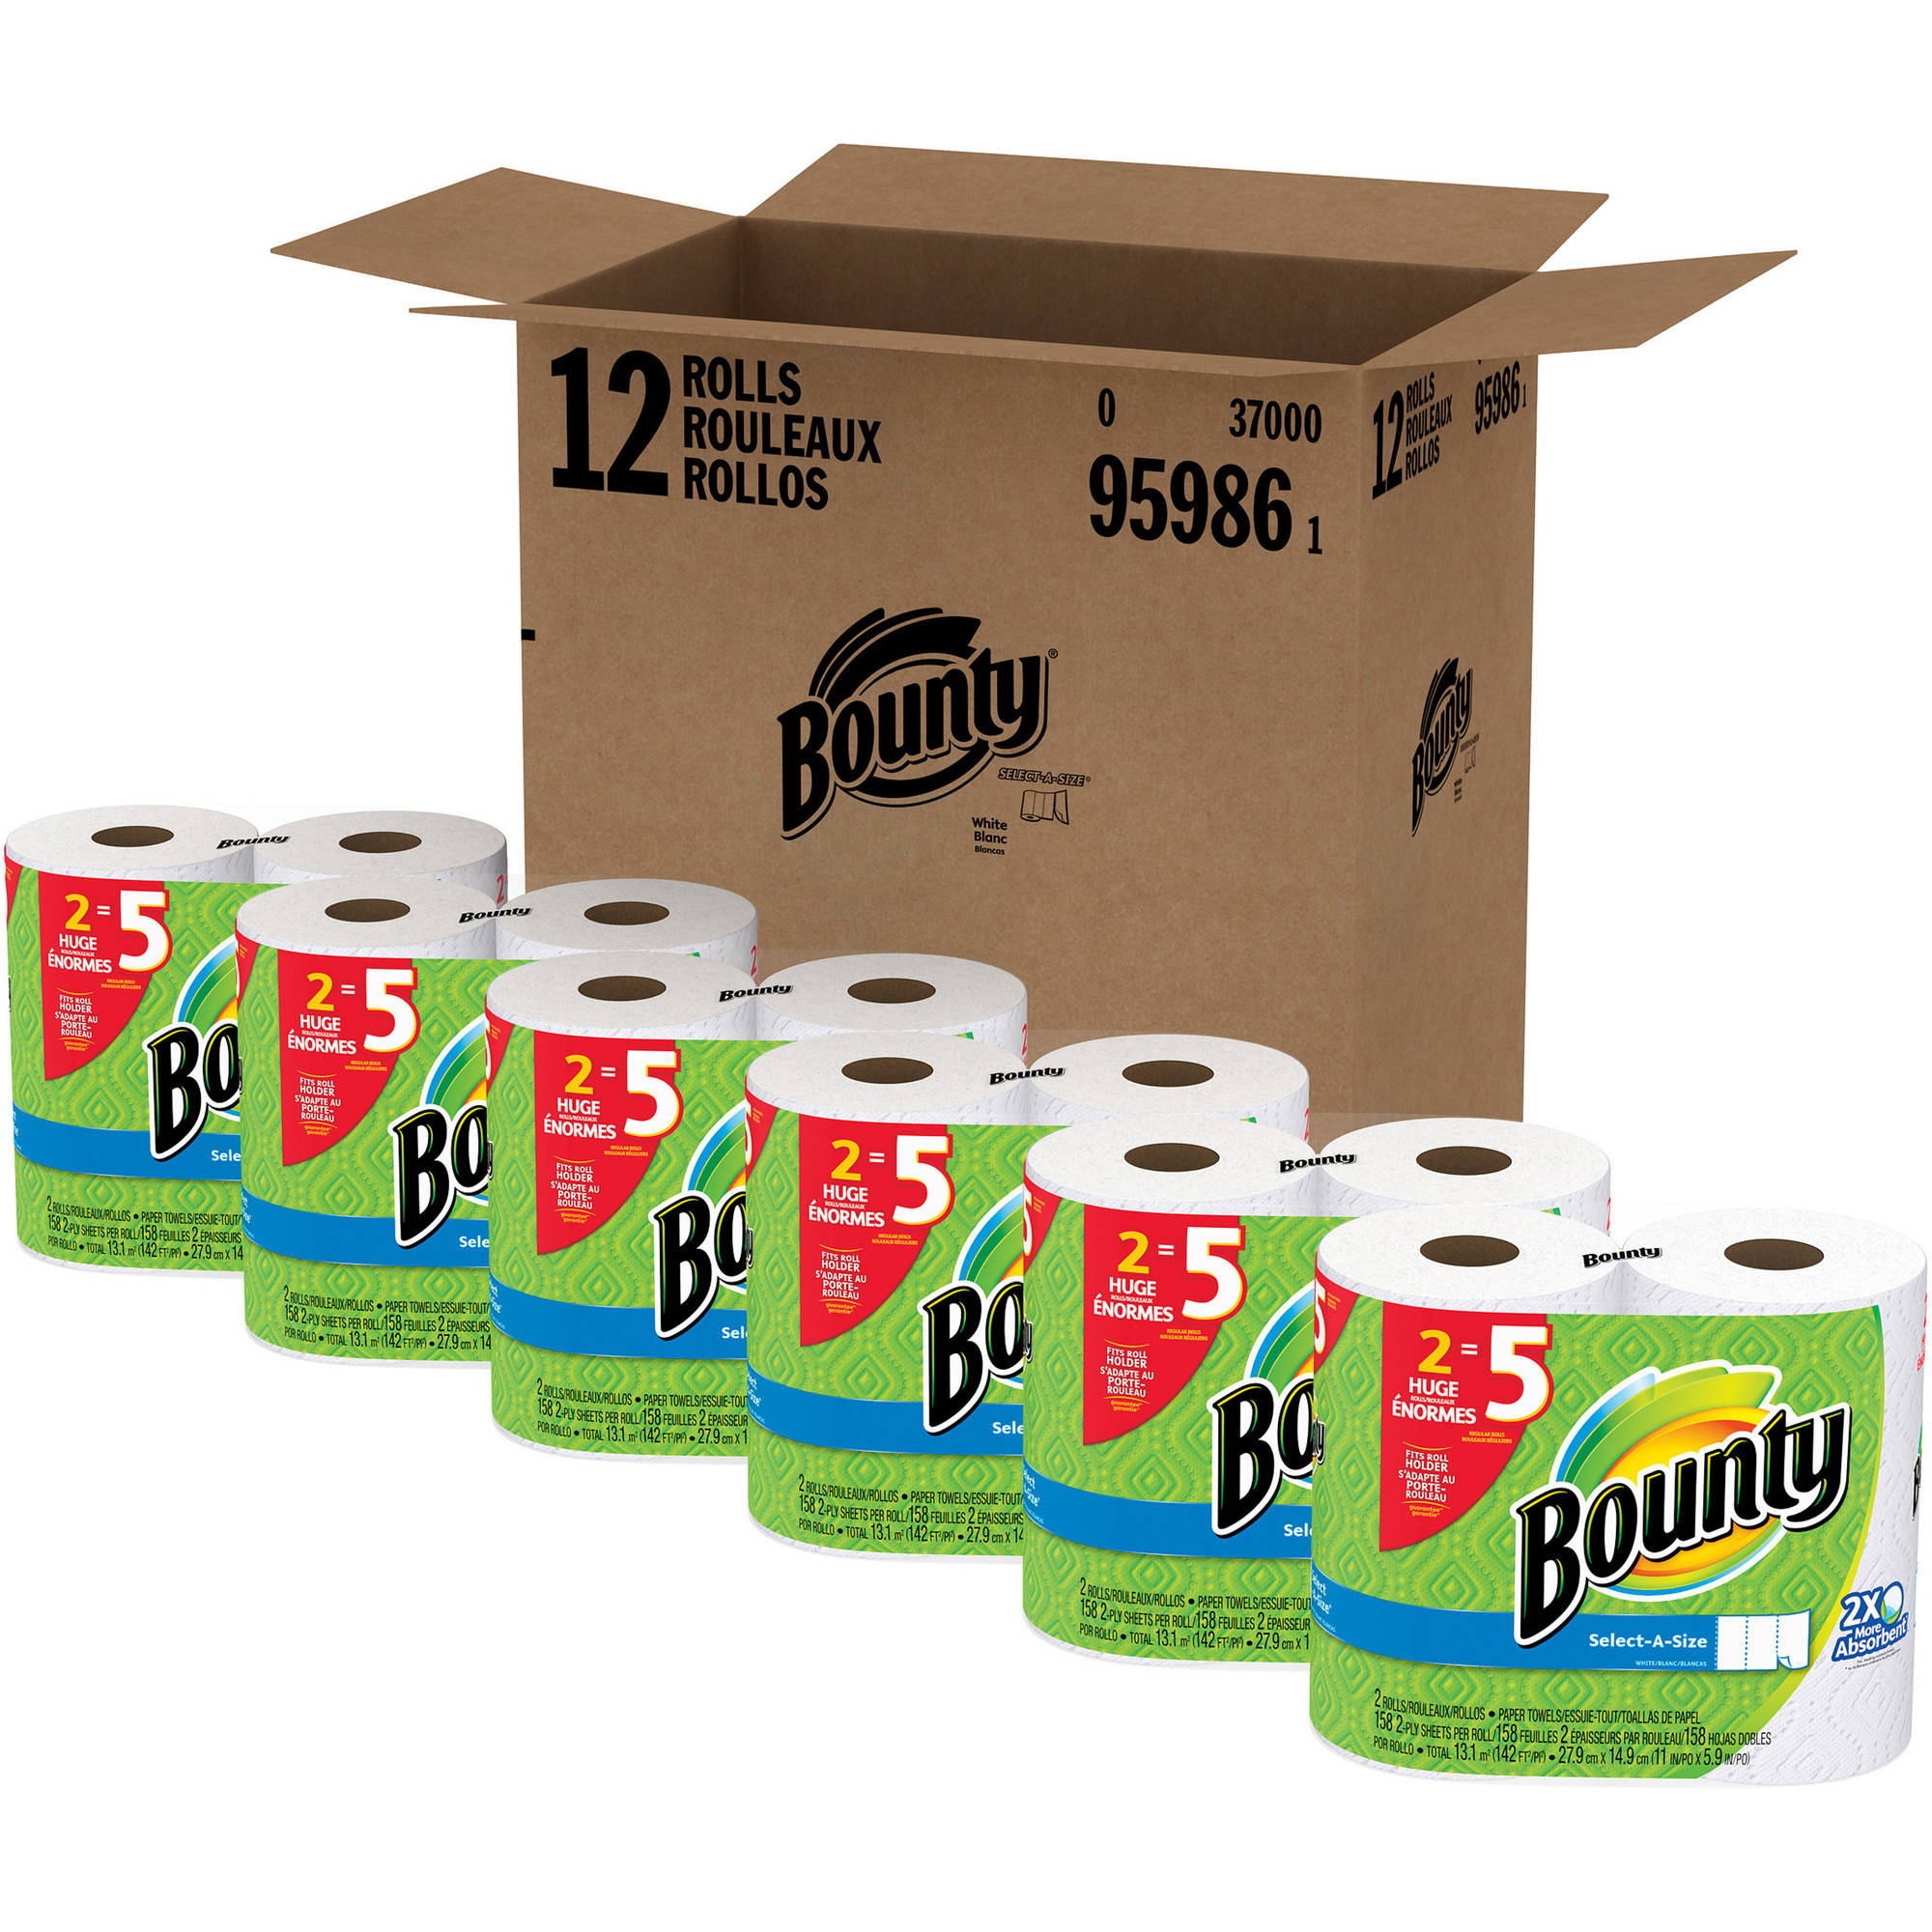 Bounty Select-a-Size Paper Towels Huge Rolls, 158 sheets, 12 rolls